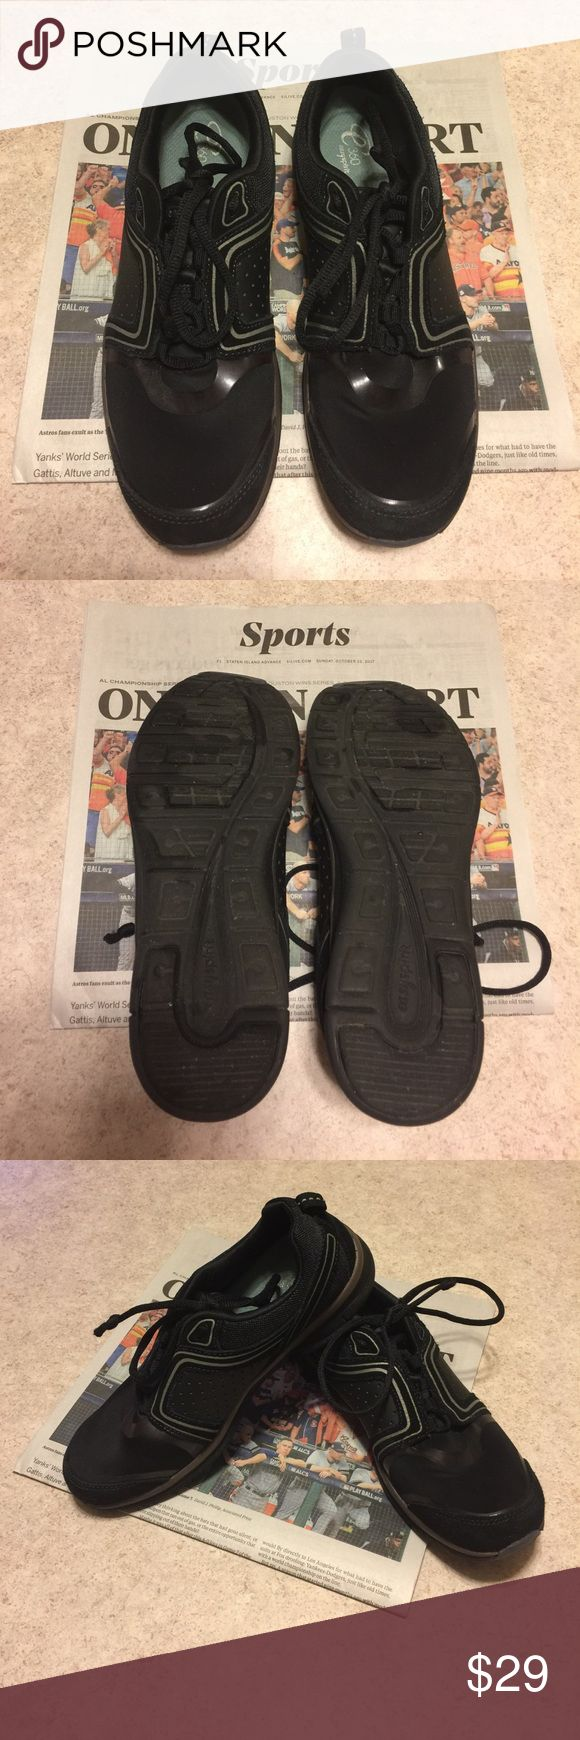 👟👟EASY SPIRIT 360 BLACK SUEDE TRIM SNEAKERS 👟👟 These are in excellent condition ❤️ and ready to wear 😉 size 8. Lightweight and perfect for everyday walking. Lace ties,traction soles. Memory foam insoles. Easy Spirit Shoes Sneakers